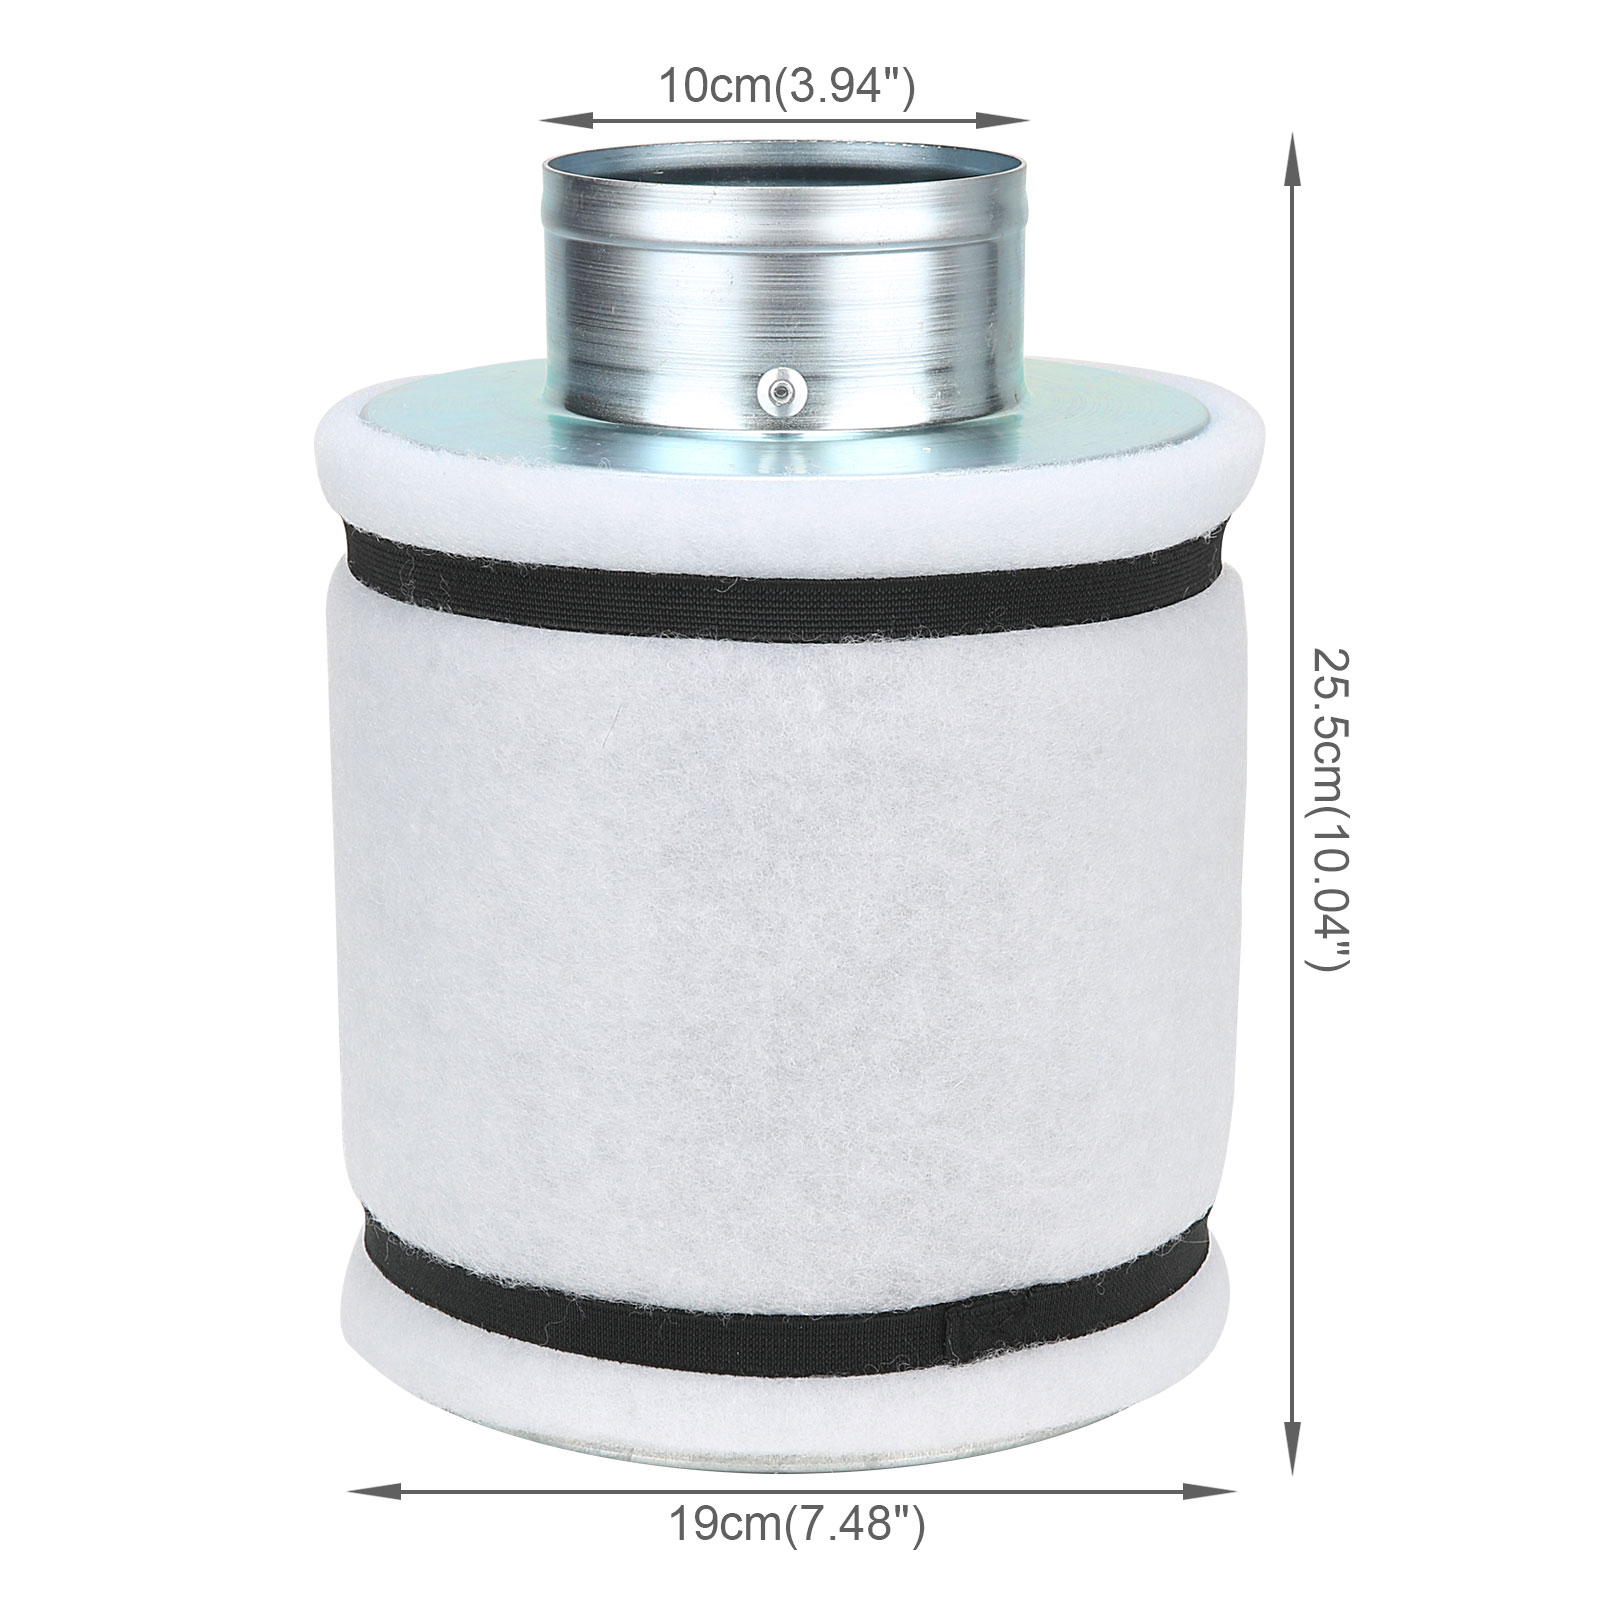 coconut as activated fiber muffler filter Activated carbons produced from coconut shells typically have a tighter, more micro porous pore structure than their coal-based counterparts  fiber ball filter.